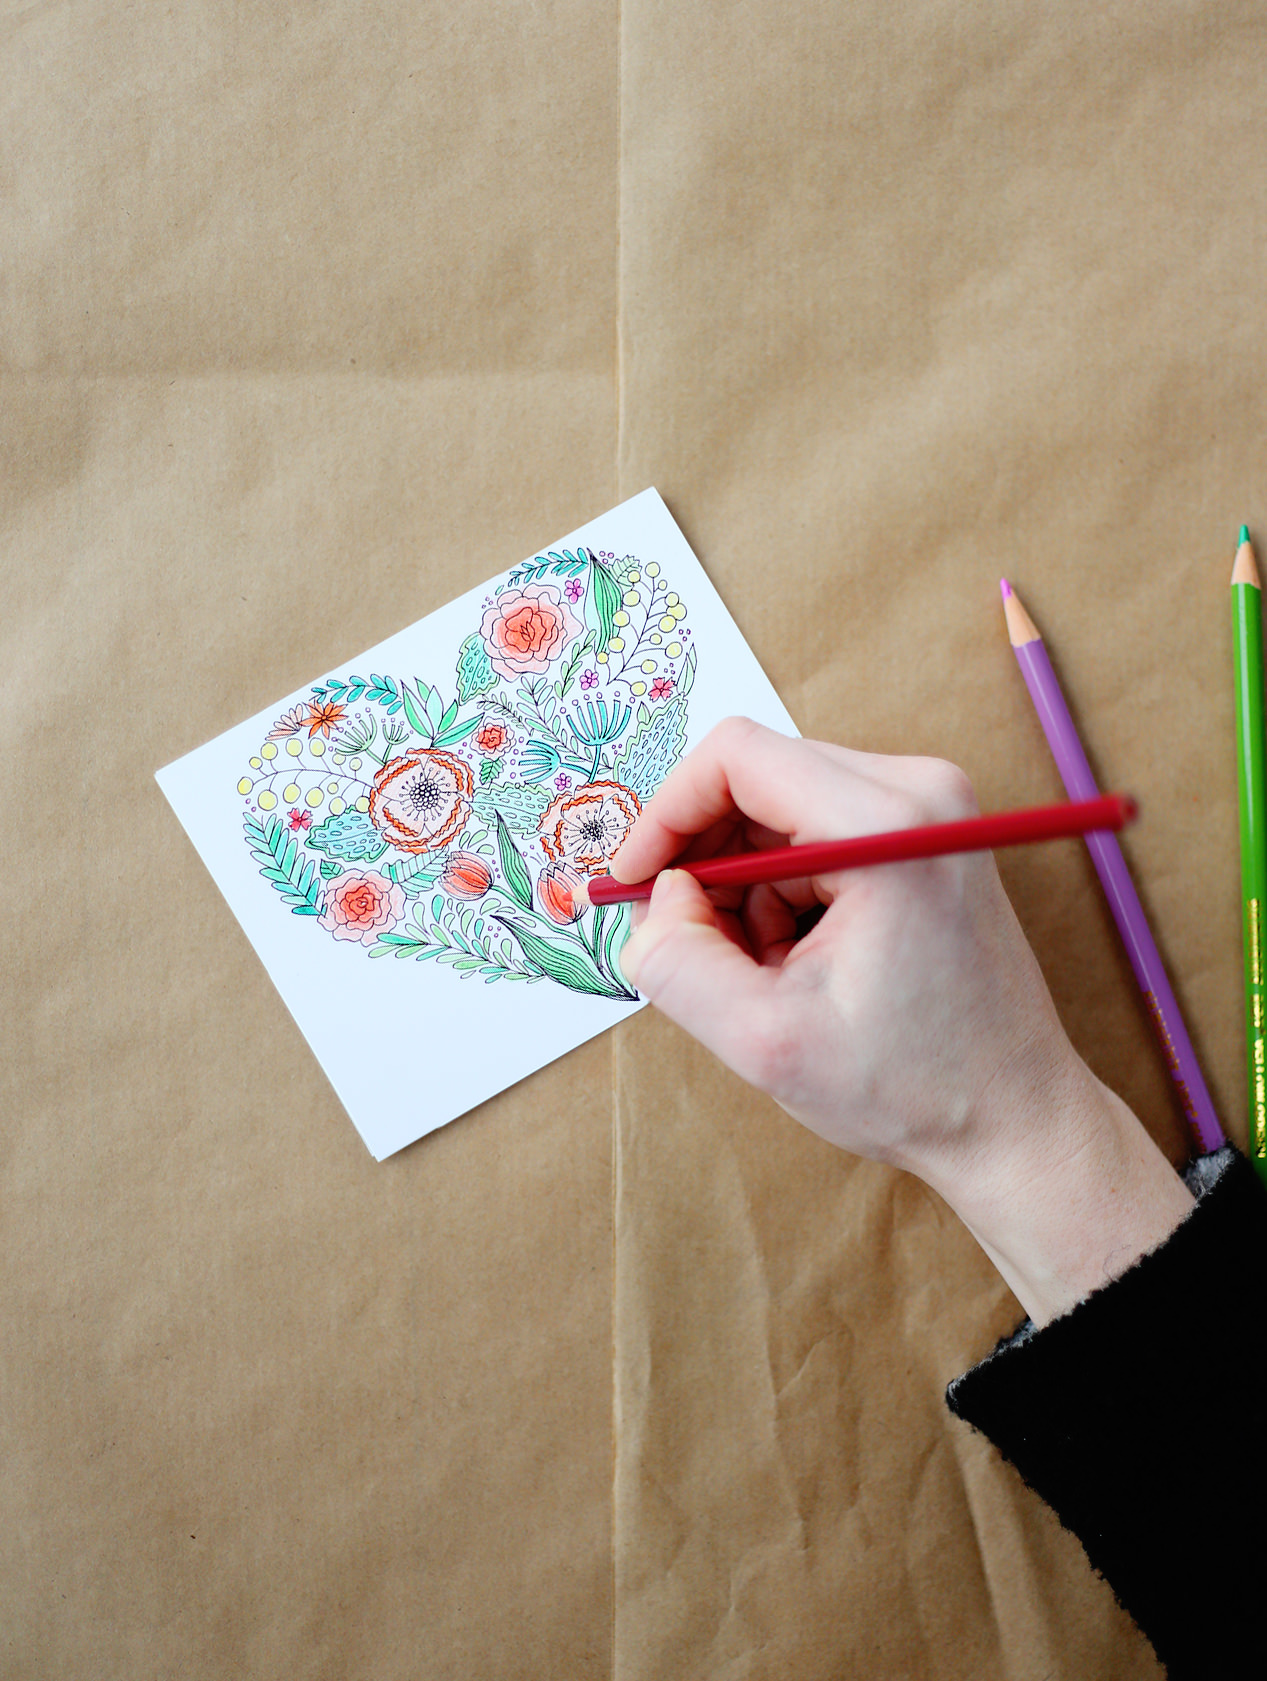 Adult coloring book meets snail mail - introducing the Lily & Val coloring notes. Inject with color and send a note to those you love! Available on lilyandval.com!